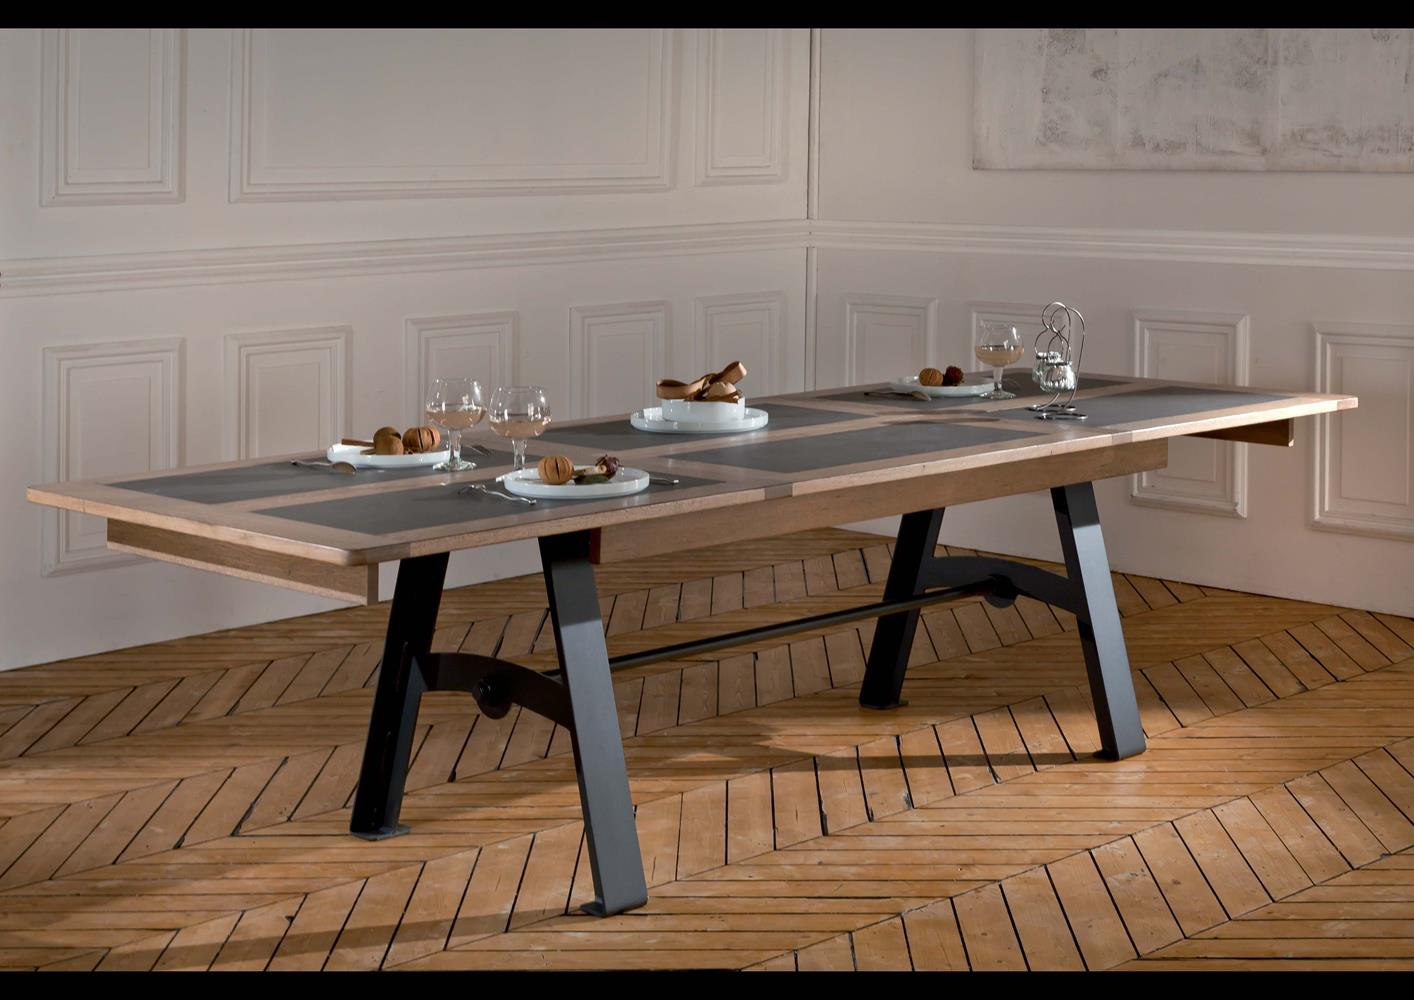 Formidable buffet salle a manger contemporain 4 a 2816 for Table salle a manger pliable